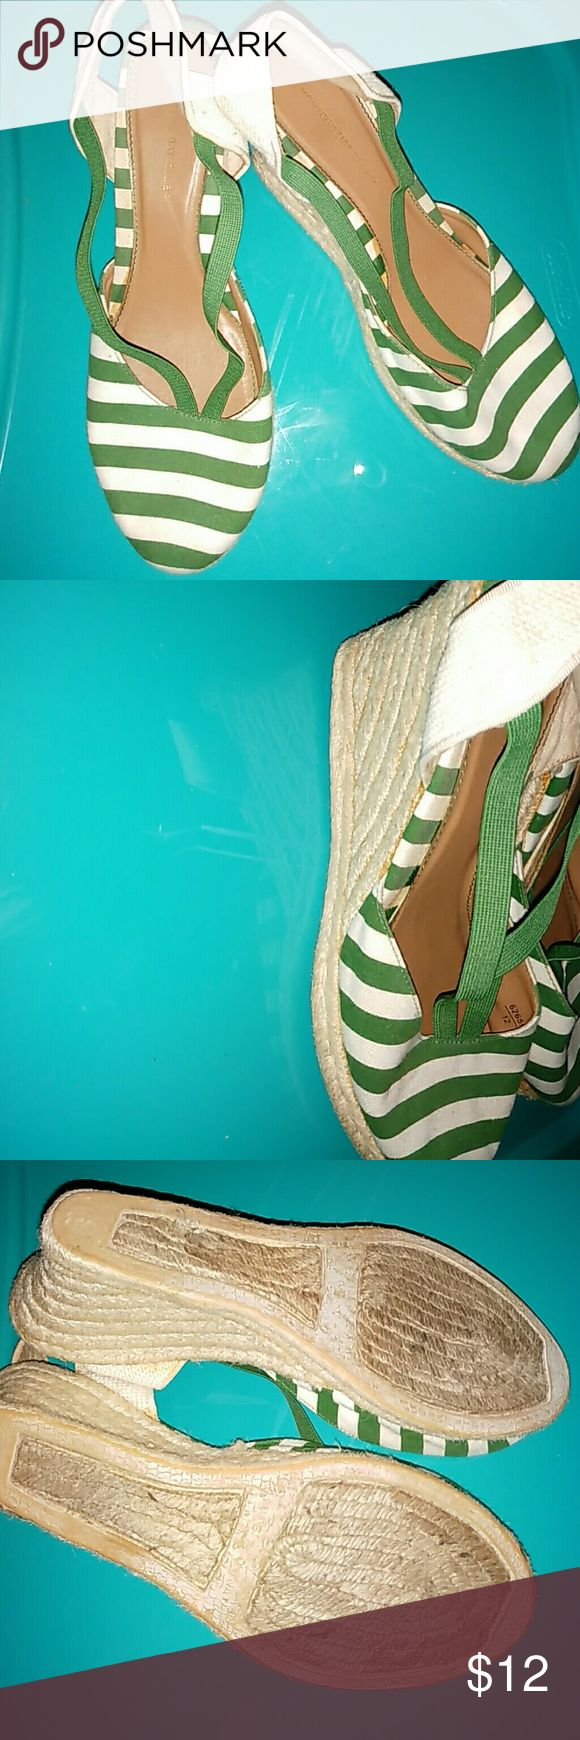 Green & White Espadrilles /size 9.5 Great condition. Montego Bay Club Shoes Espadrilles